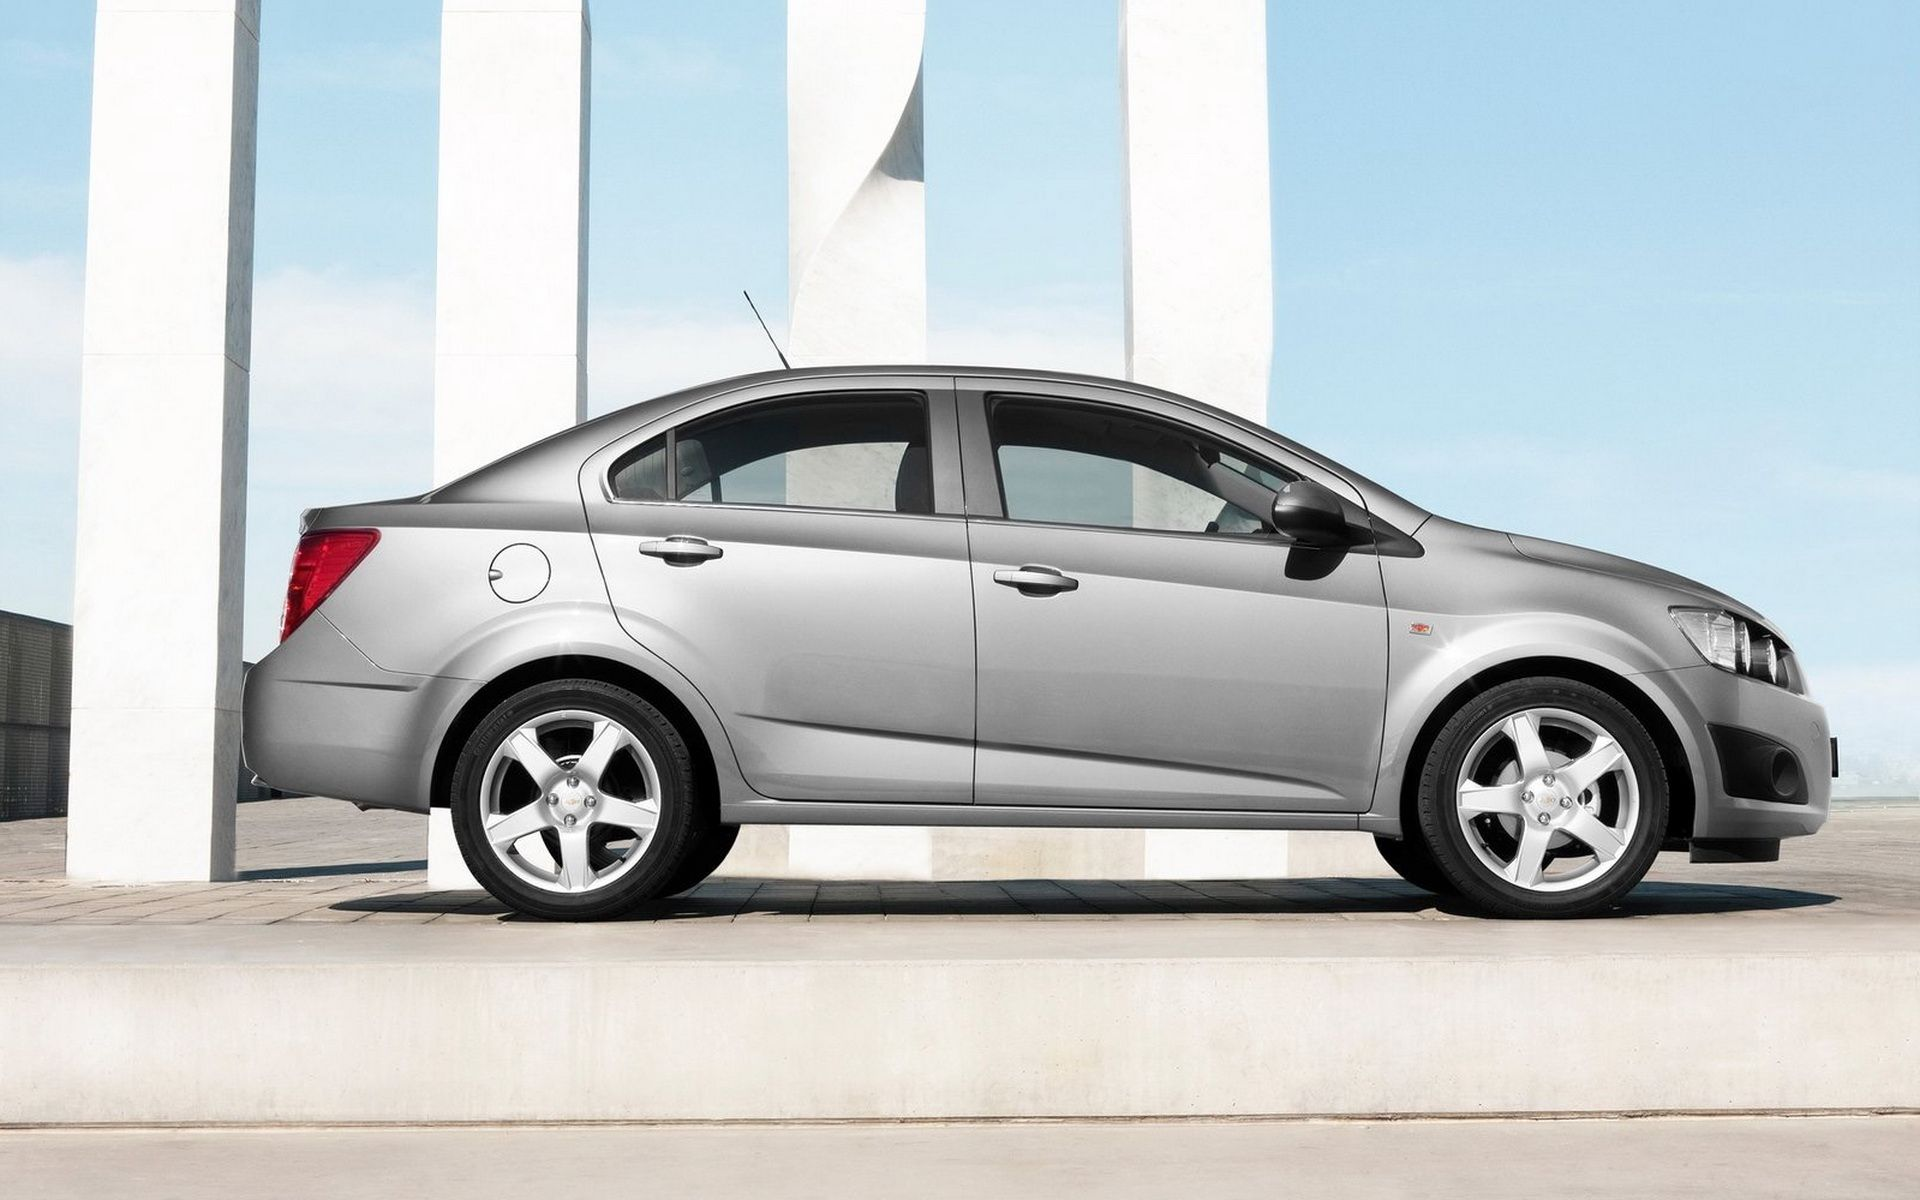 Invoice Meaning In English Word  Chevrolet Aveo Sedan   Chevrolet Aveo  Hybridcarscom  How To Calculate Invoice Price Excel with Construction Invoice Software Pdf The Chevrolet Launches New Chevrolet Aveo Sedan Is Comforting For The  Driver What Are Depository Receipts